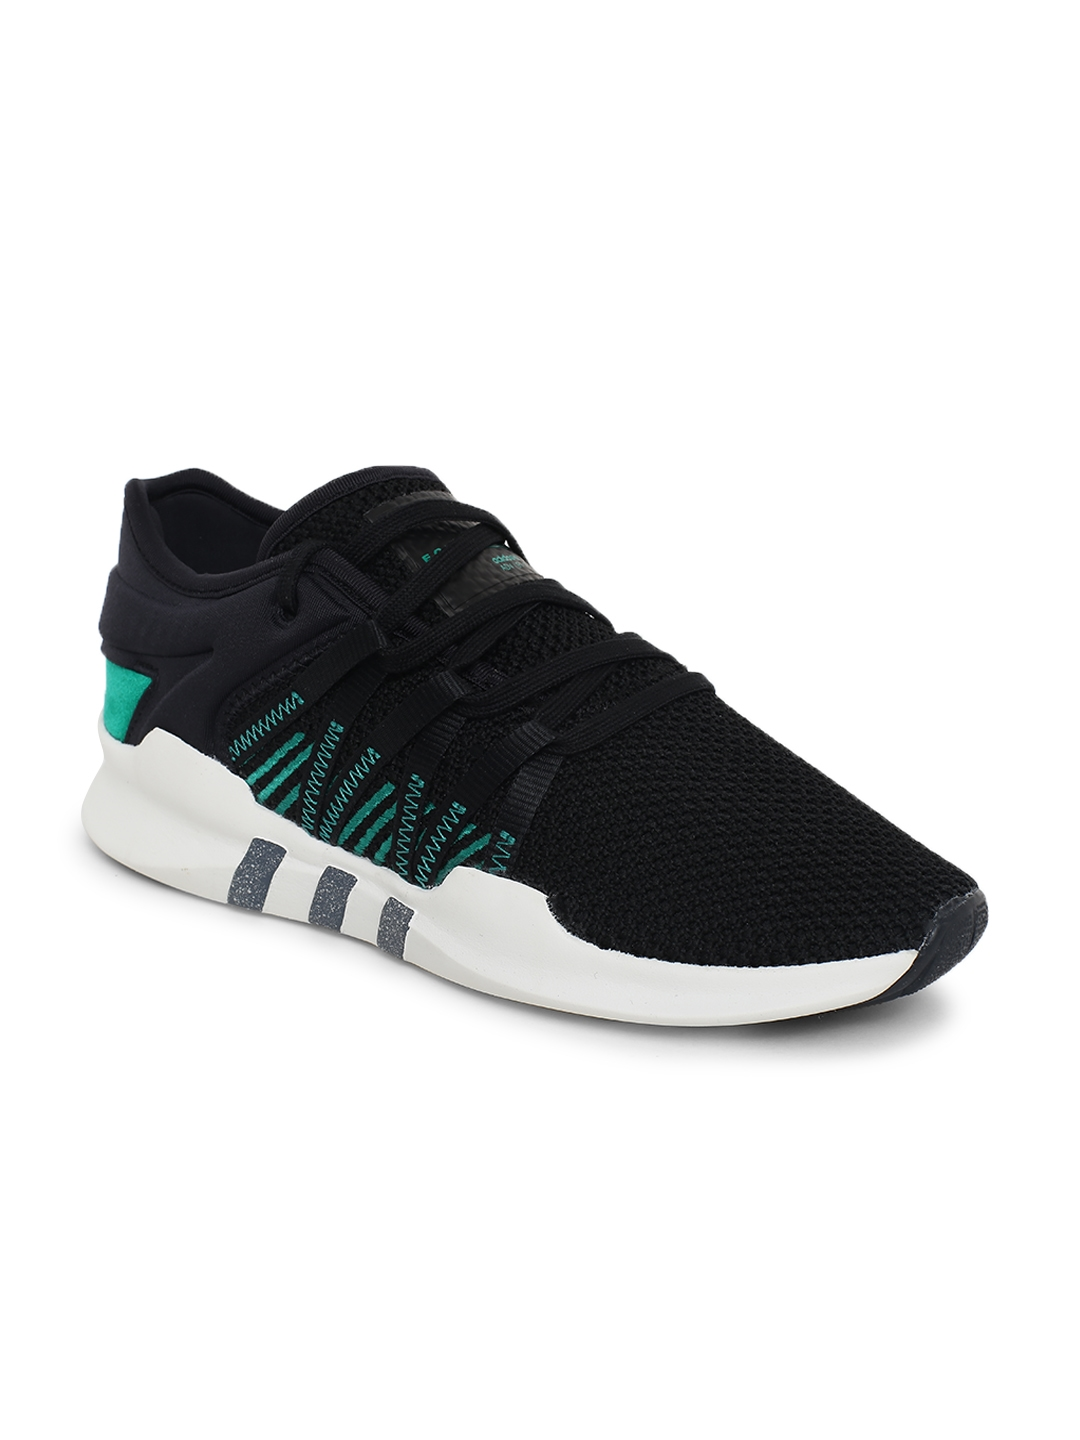 watch 376f7 6b652 ADIDAS Originals Women Black EQT RACING ADV Sneakers